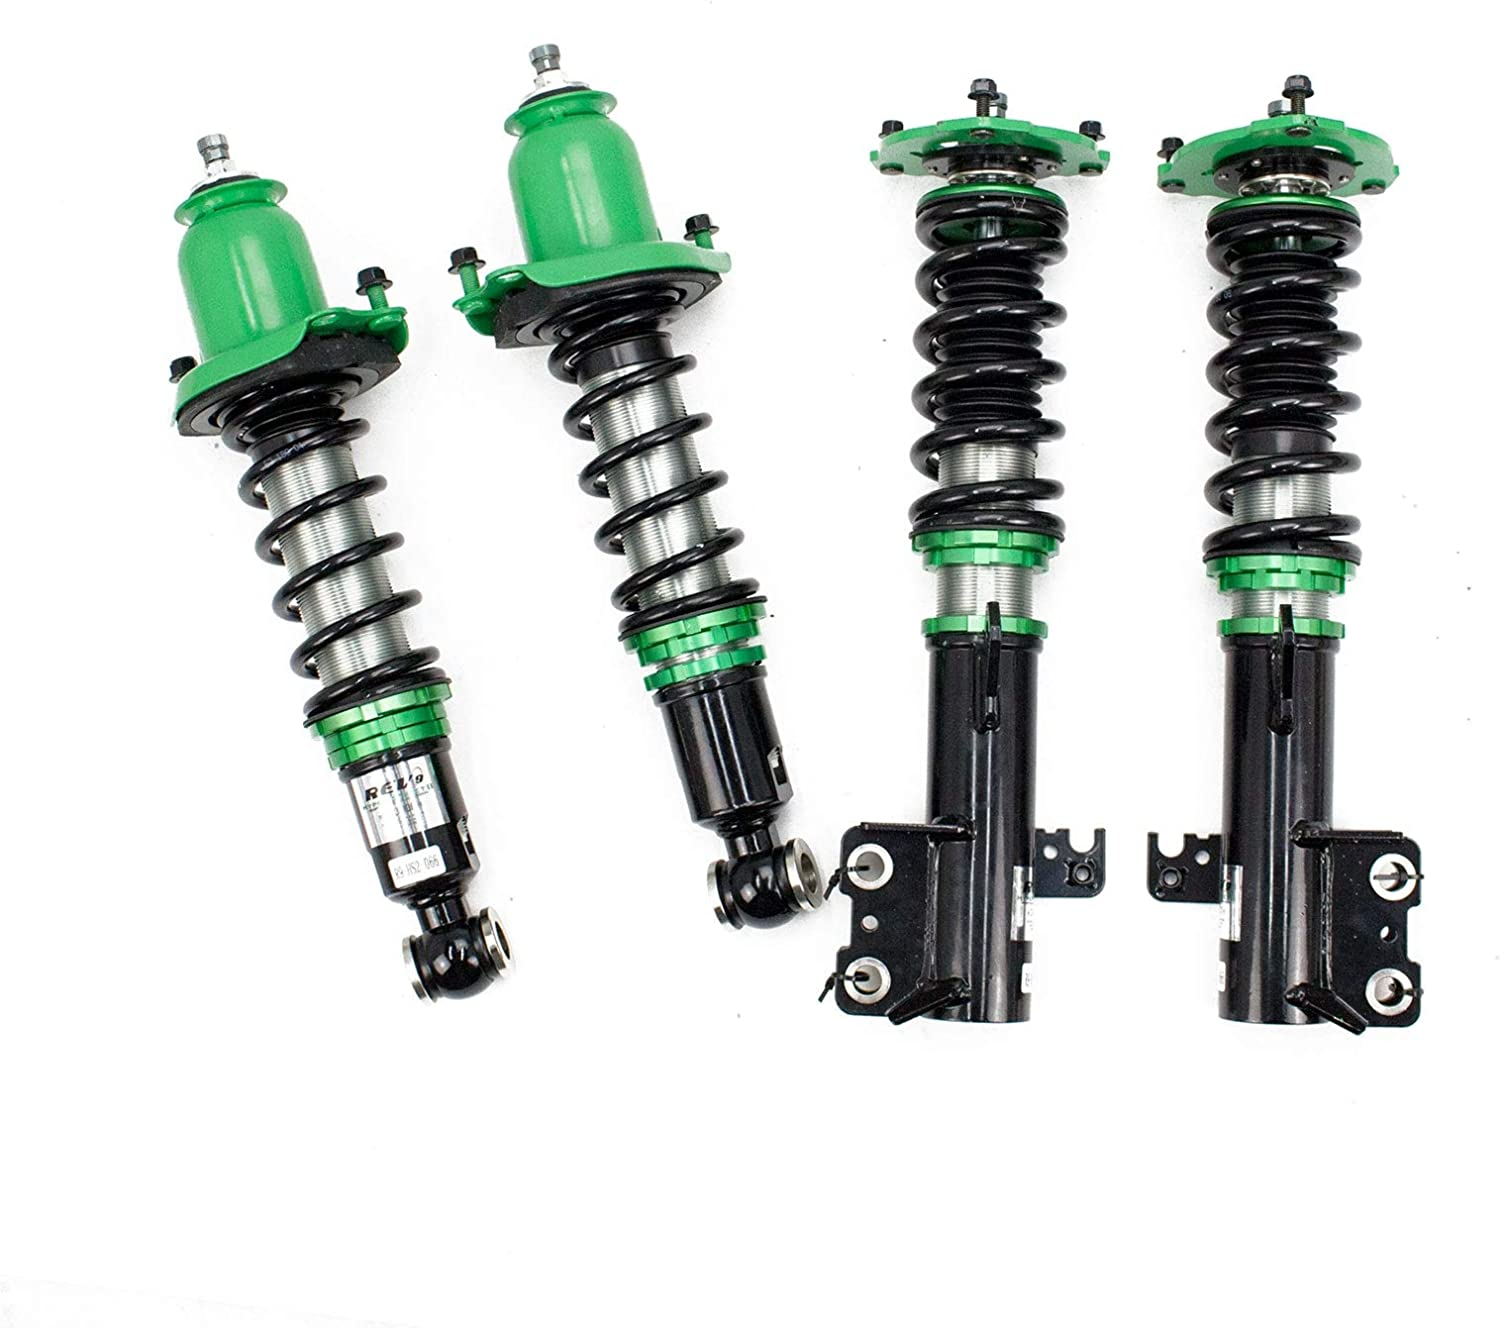 Ride Height Adjustable E120//E130 32 Damping Level Adjustment Rev9 R9-HS2-066/_1 compatible with Toyota Corolla 2003-08 Hyper-Street II Coilovers Lowering Kit